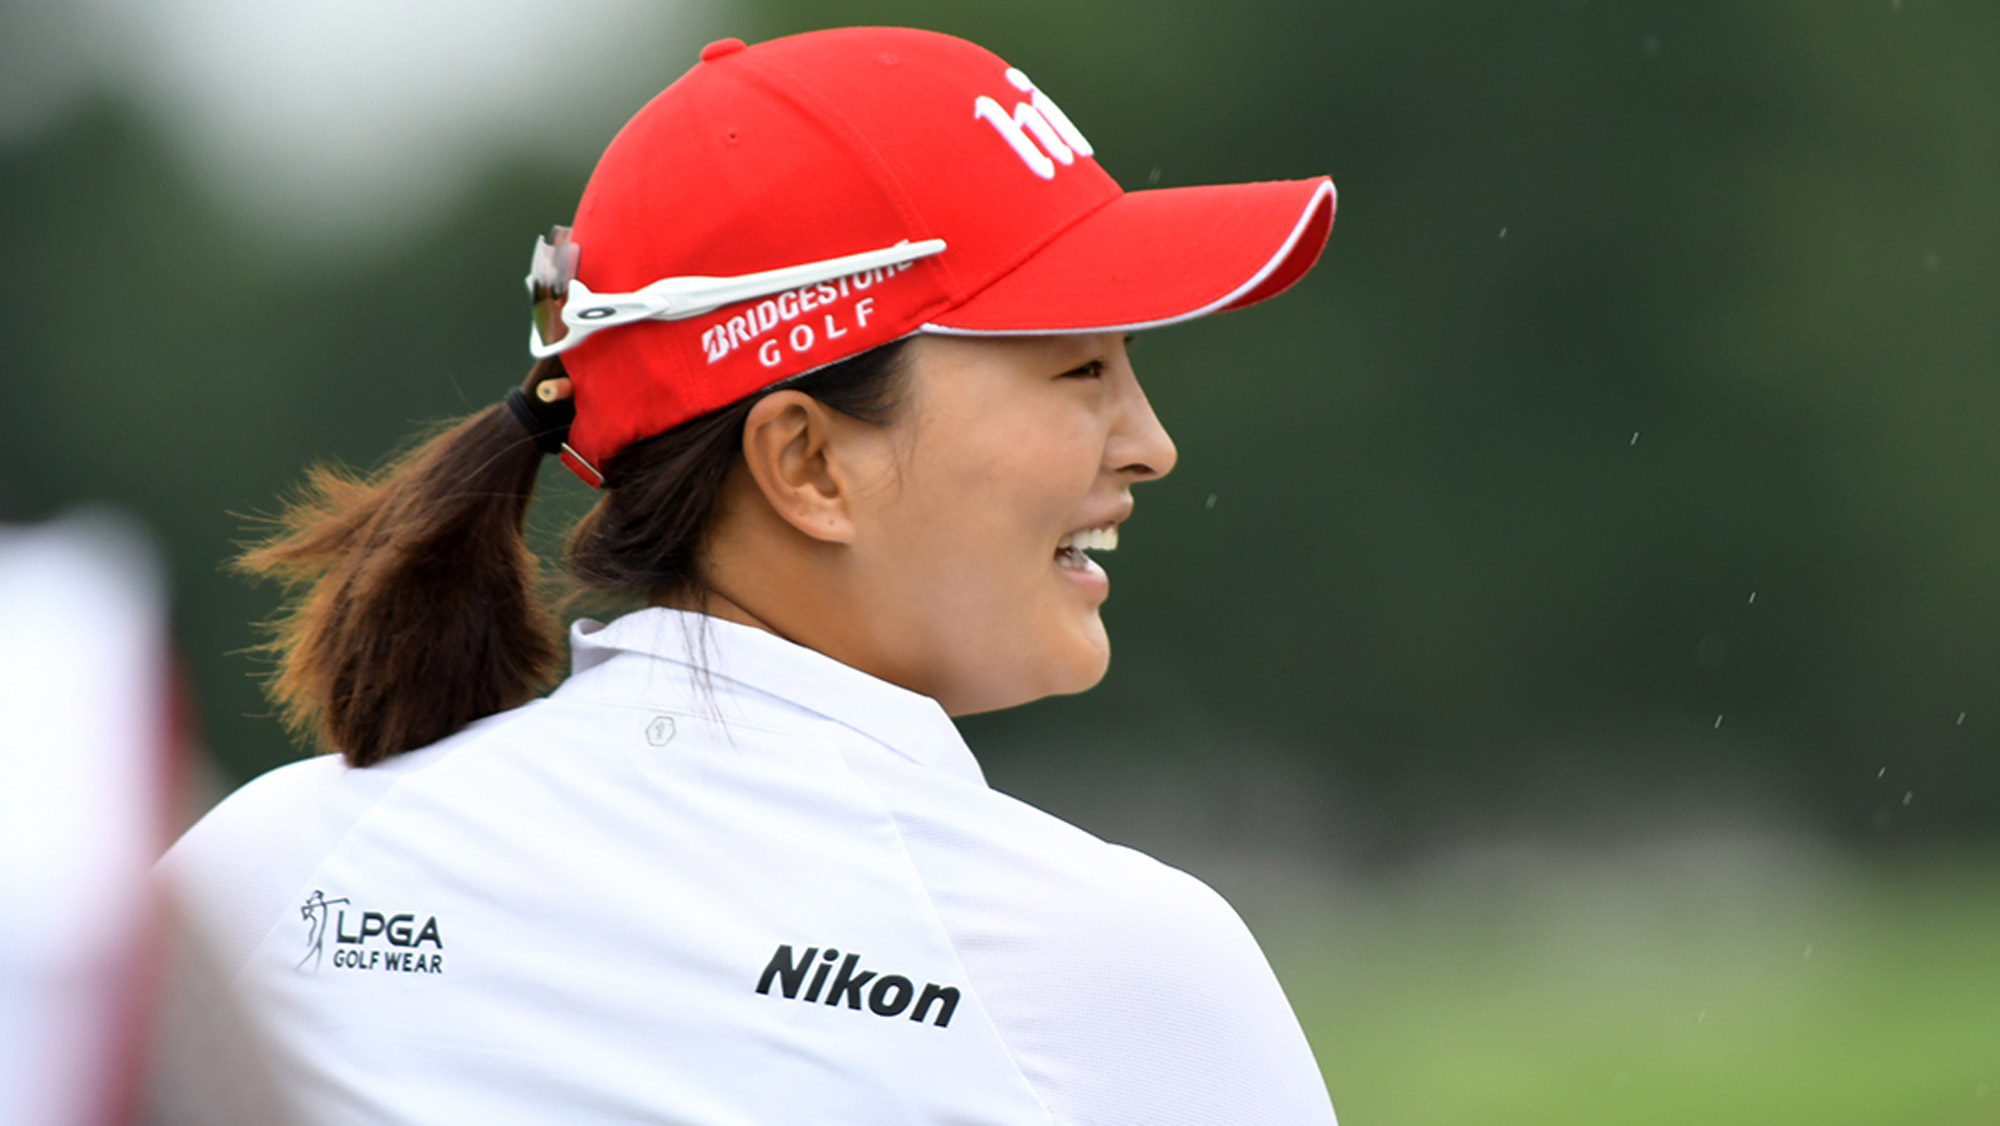 Jin Young Ko is Feeling Good at the VOA LPGA Texas